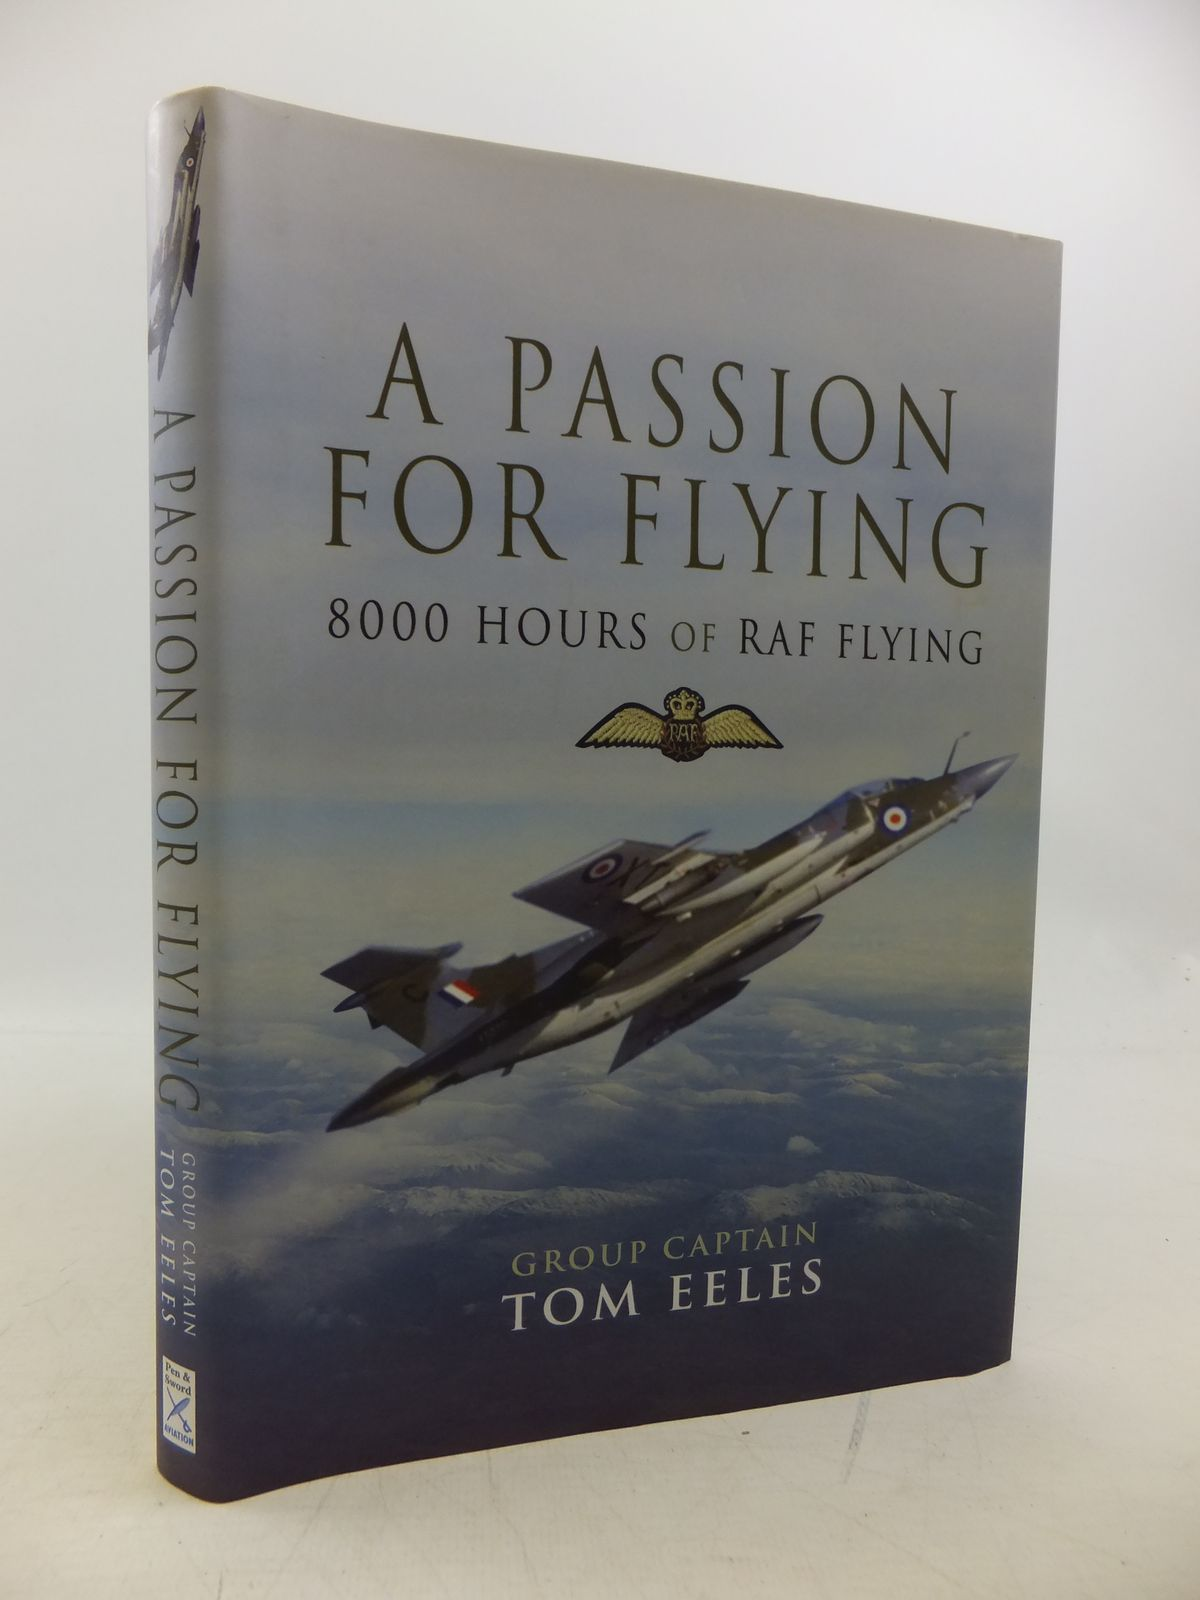 Photo of A PASSION FOR FLYING 8000 HOURS OF RAF FLYING written by Eeles, Tom published by Pen & Sword Aviation (STOCK CODE: 2120269)  for sale by Stella & Rose's Books